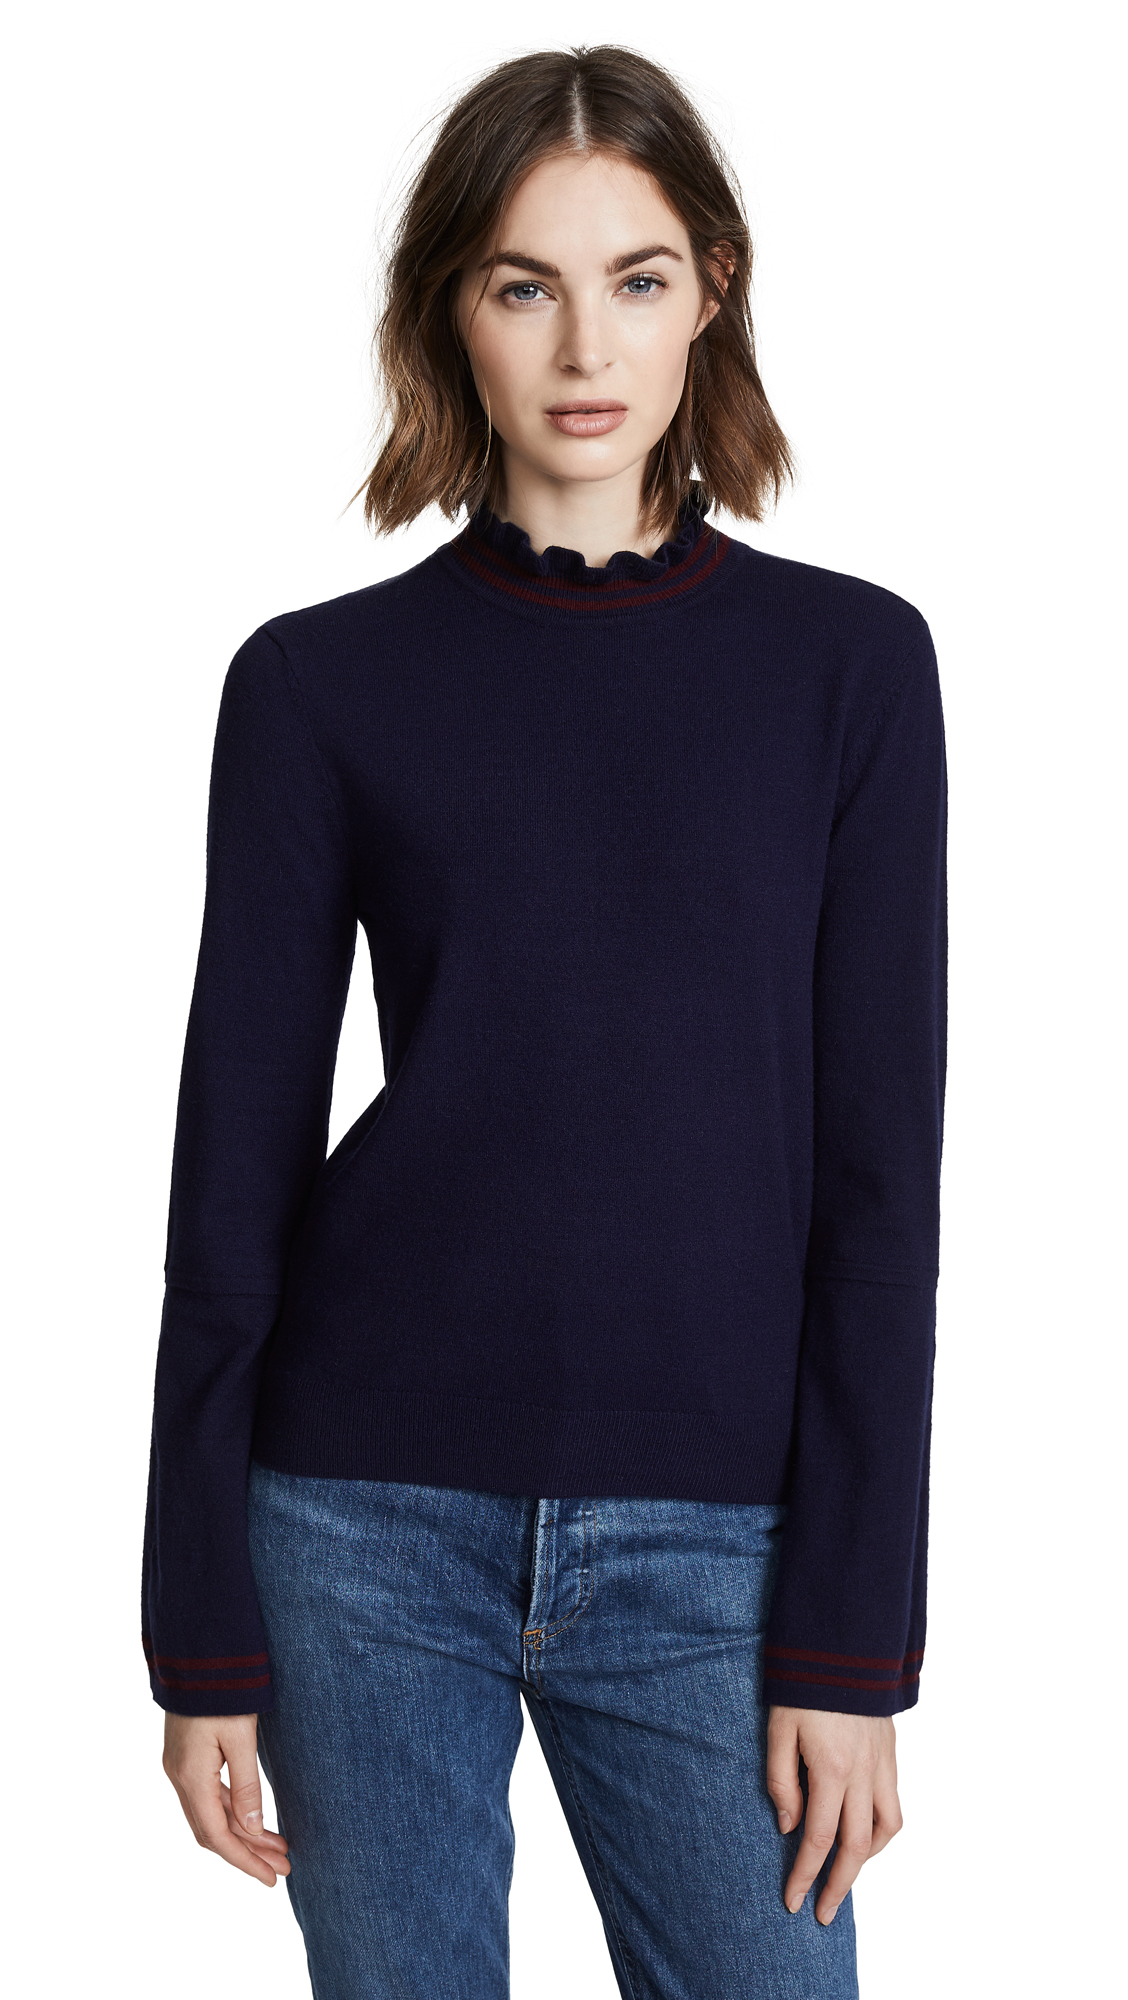 BB Dakota Lost In Translation Sweater In Midnight Sky